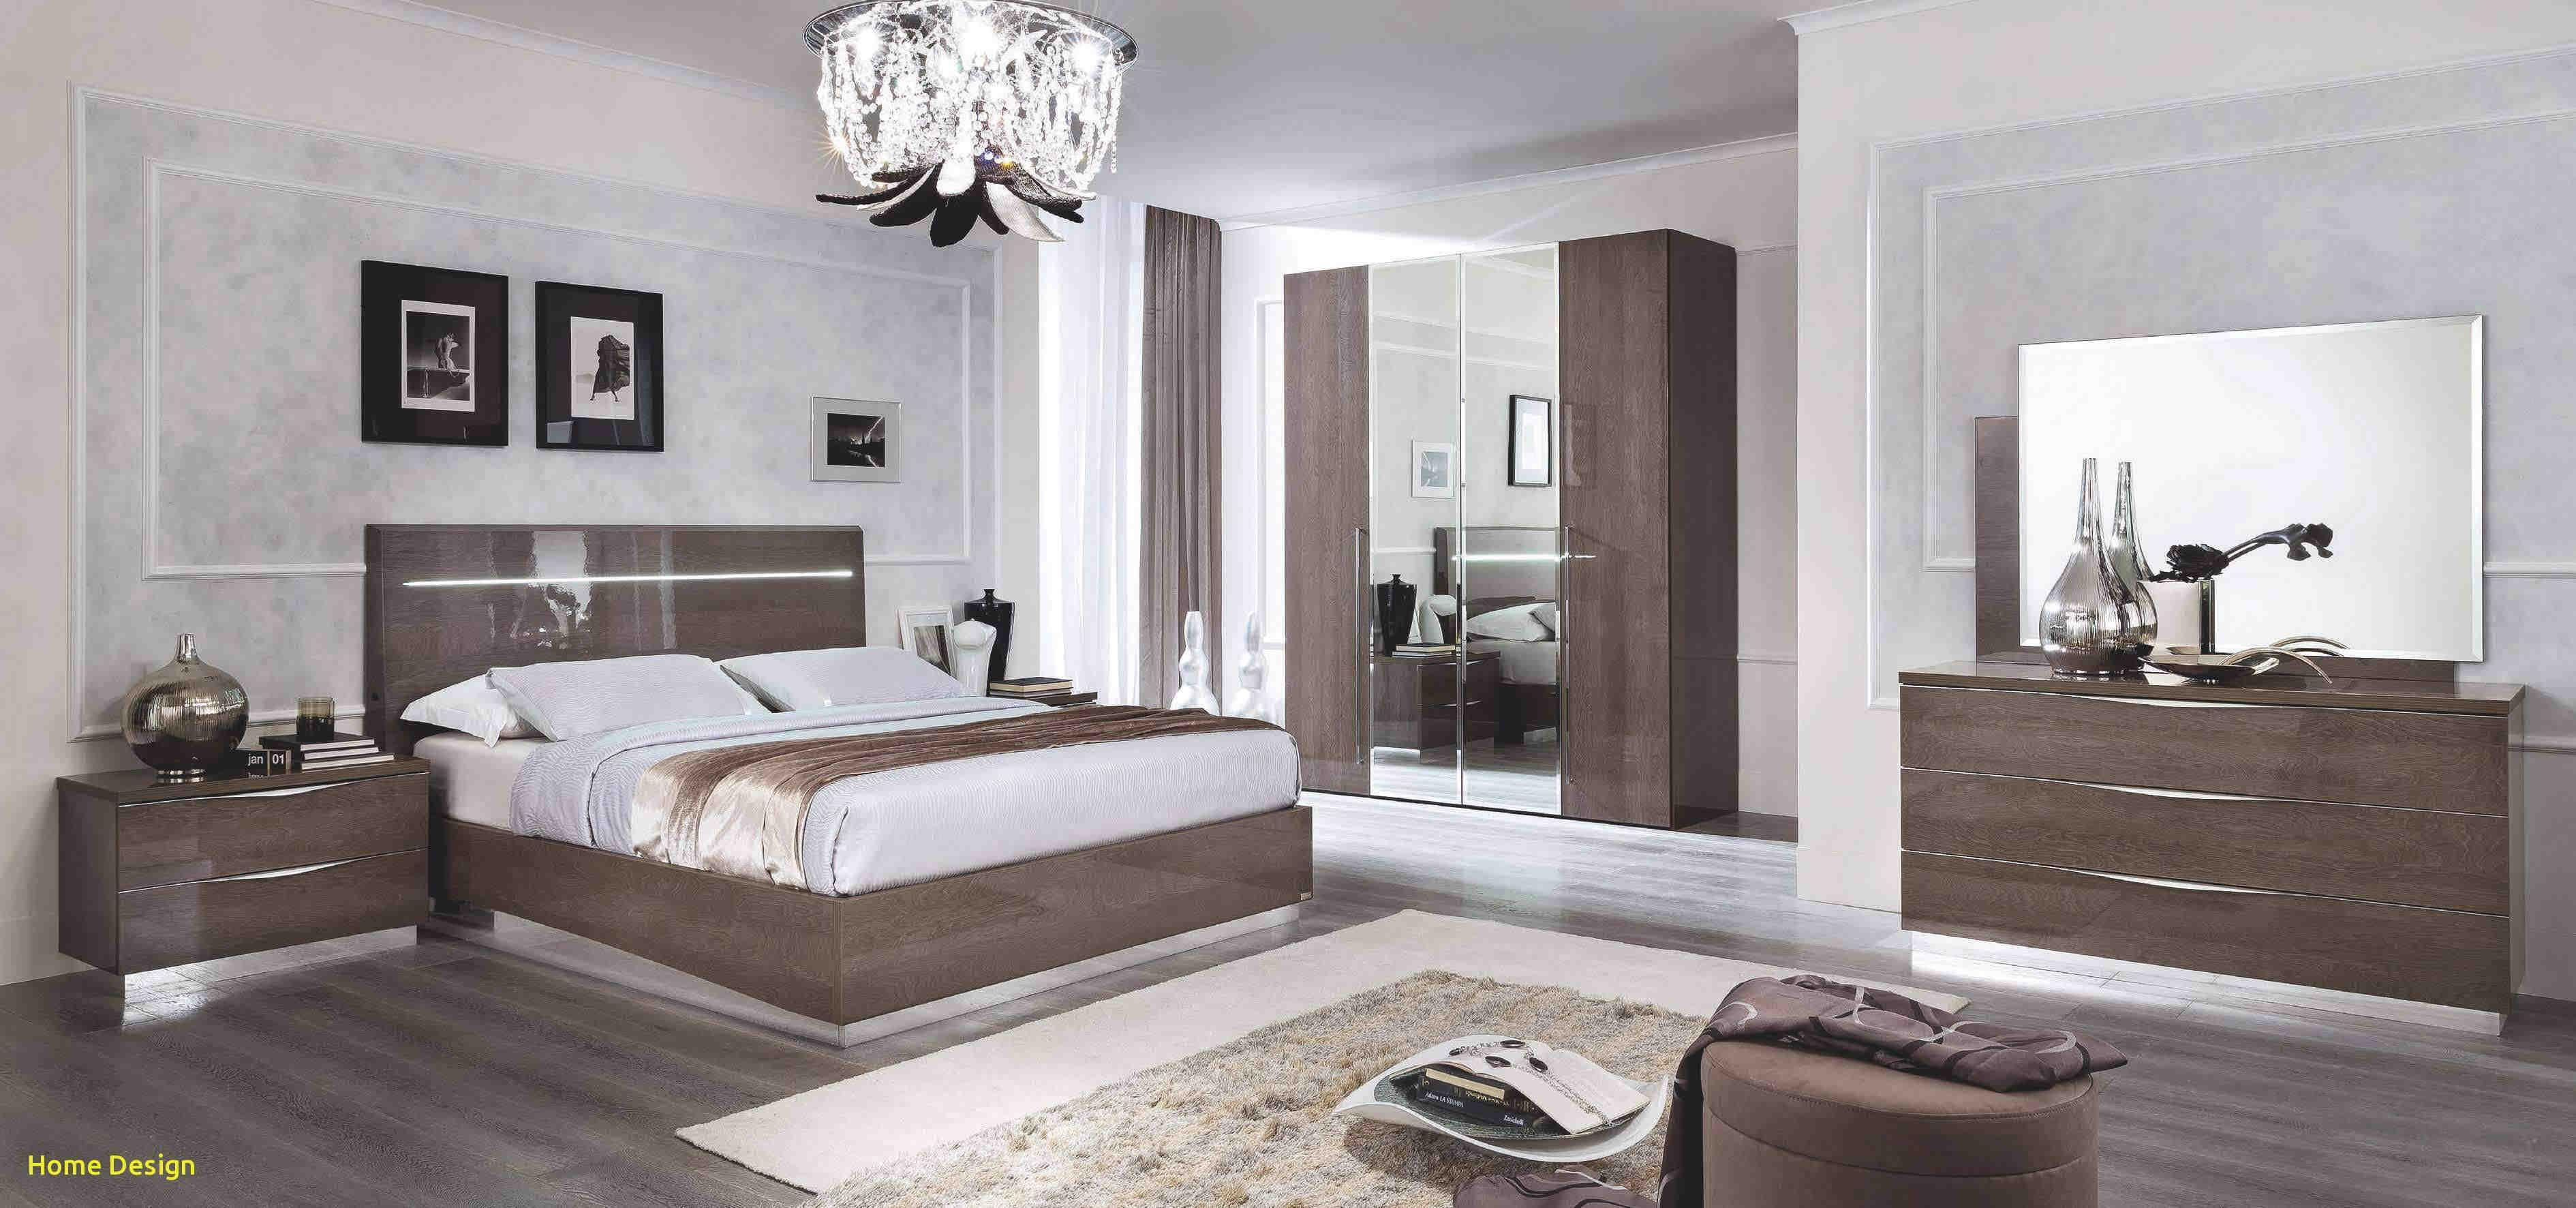 Mod Bedroom Design Designs Pi Awesome Beautiful Modern Best pertaining to Beautiful Modern Bedrooms